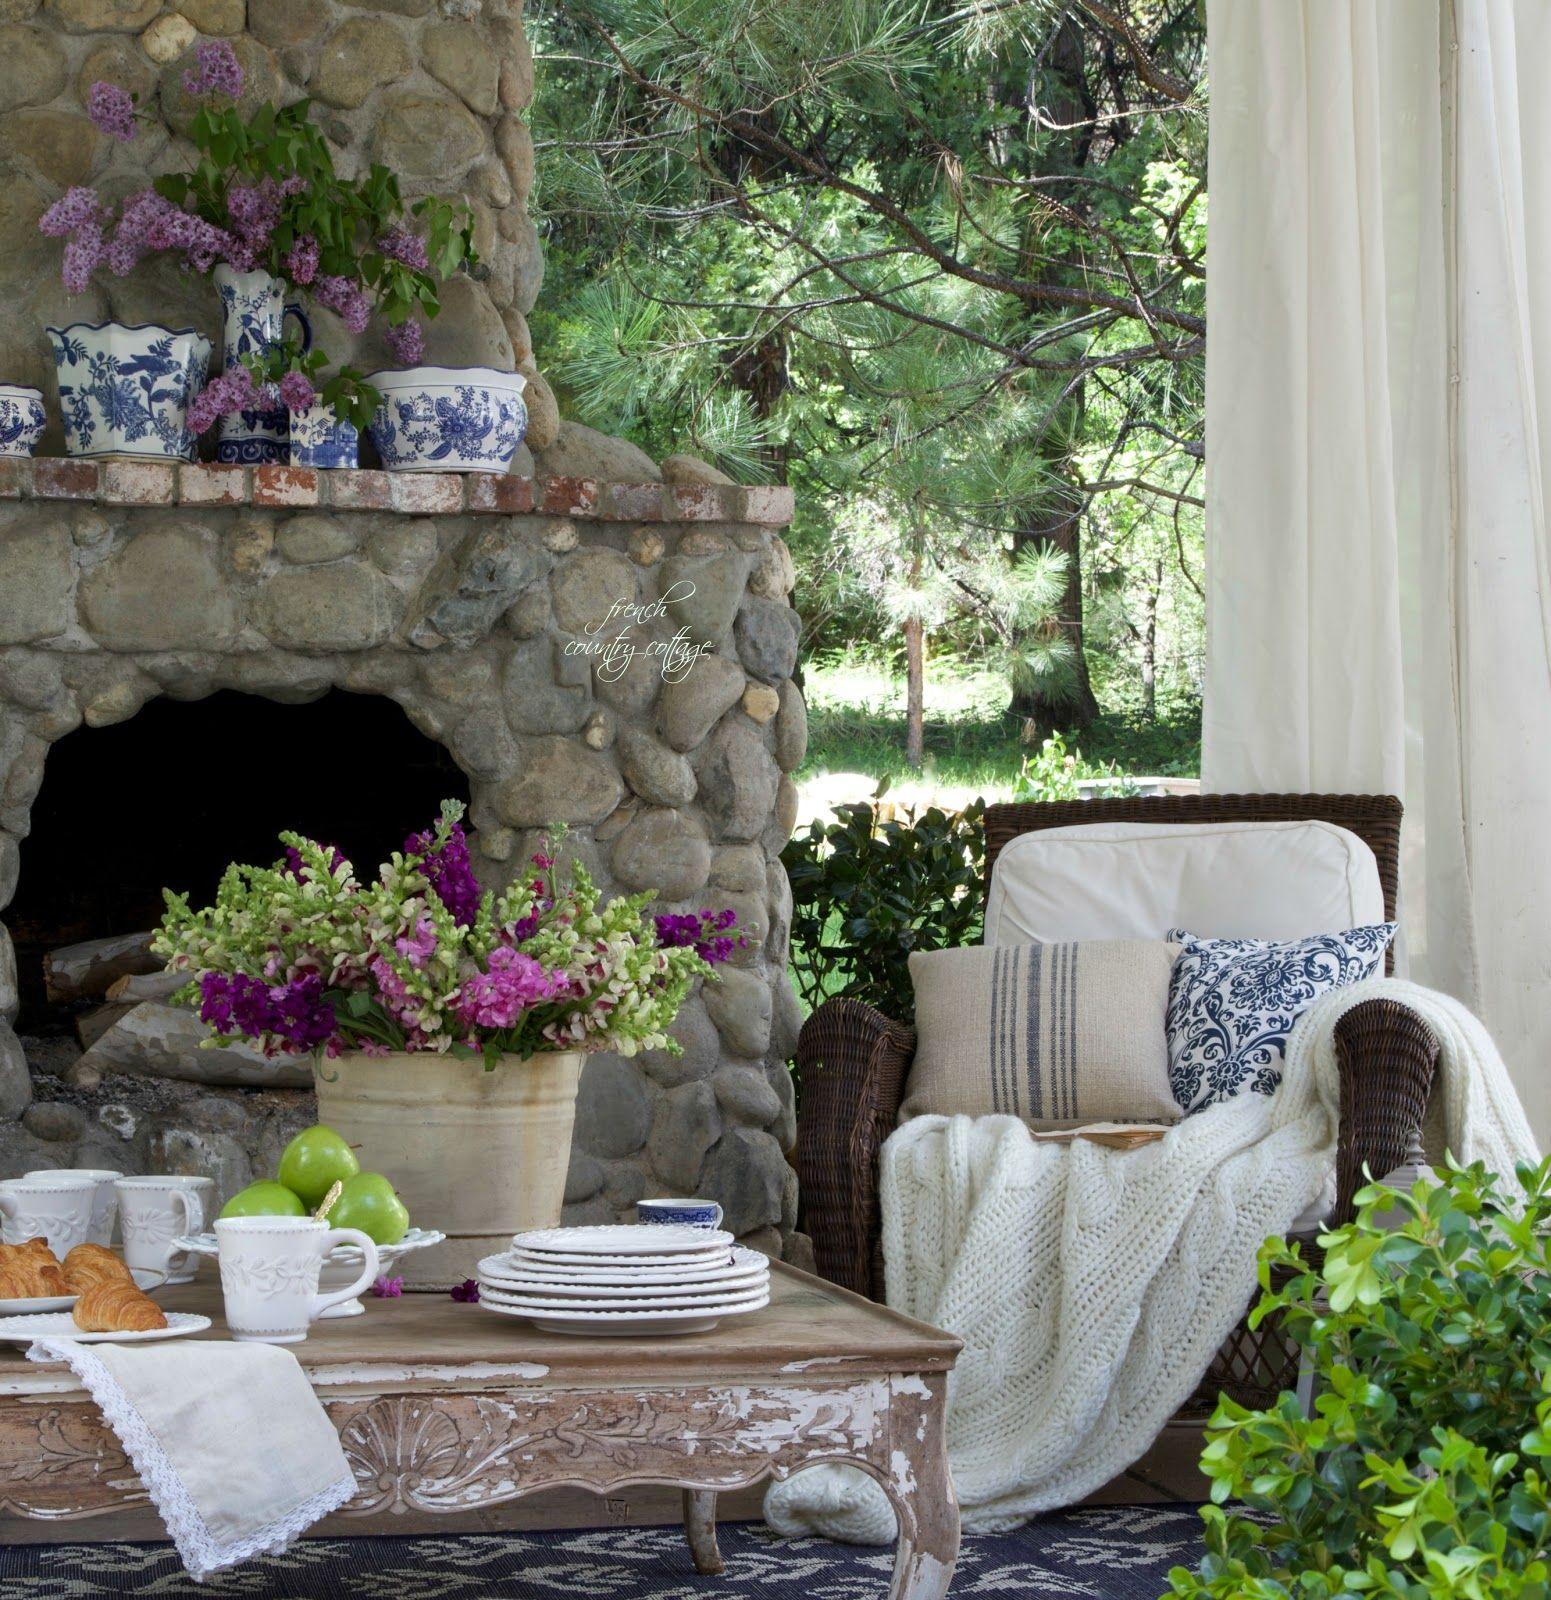 Summer Garden Party Event   Garden   Pinterest   Cottage patio     French Country Cottage  patio  Outdoor living